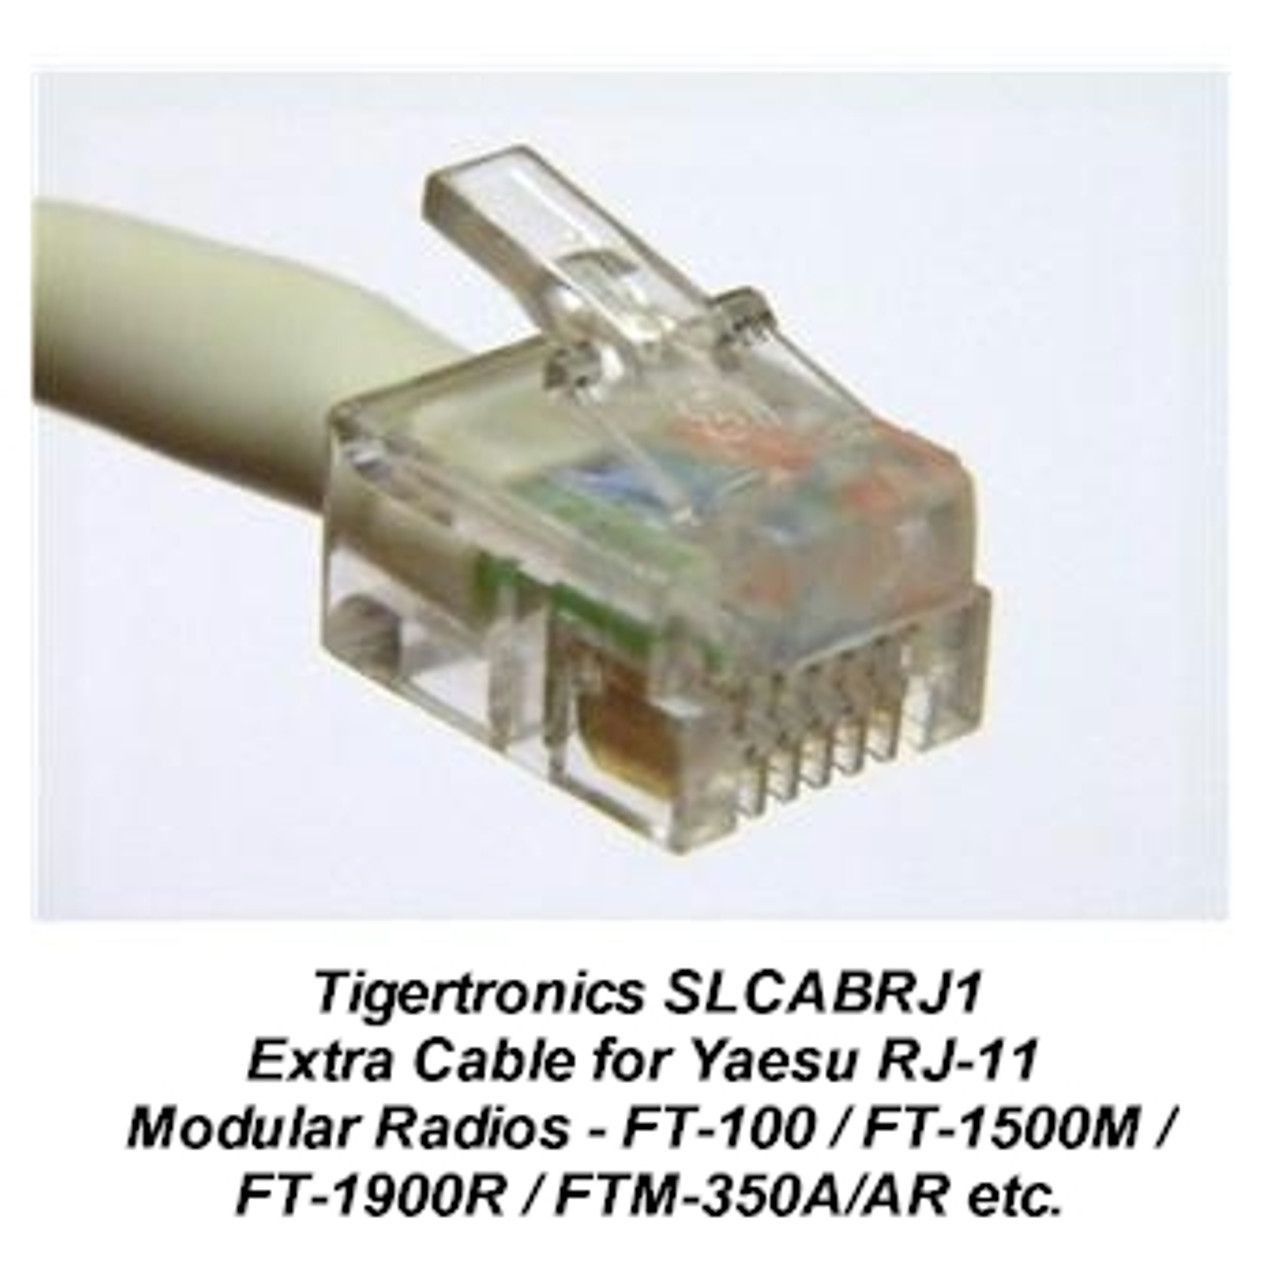 Tigertronics Signalink SLCABRJ1 Cable - This radio cable is compatible with virtually any radio that has an 6-pin RJ-11 /RJ-12 type Mic jack